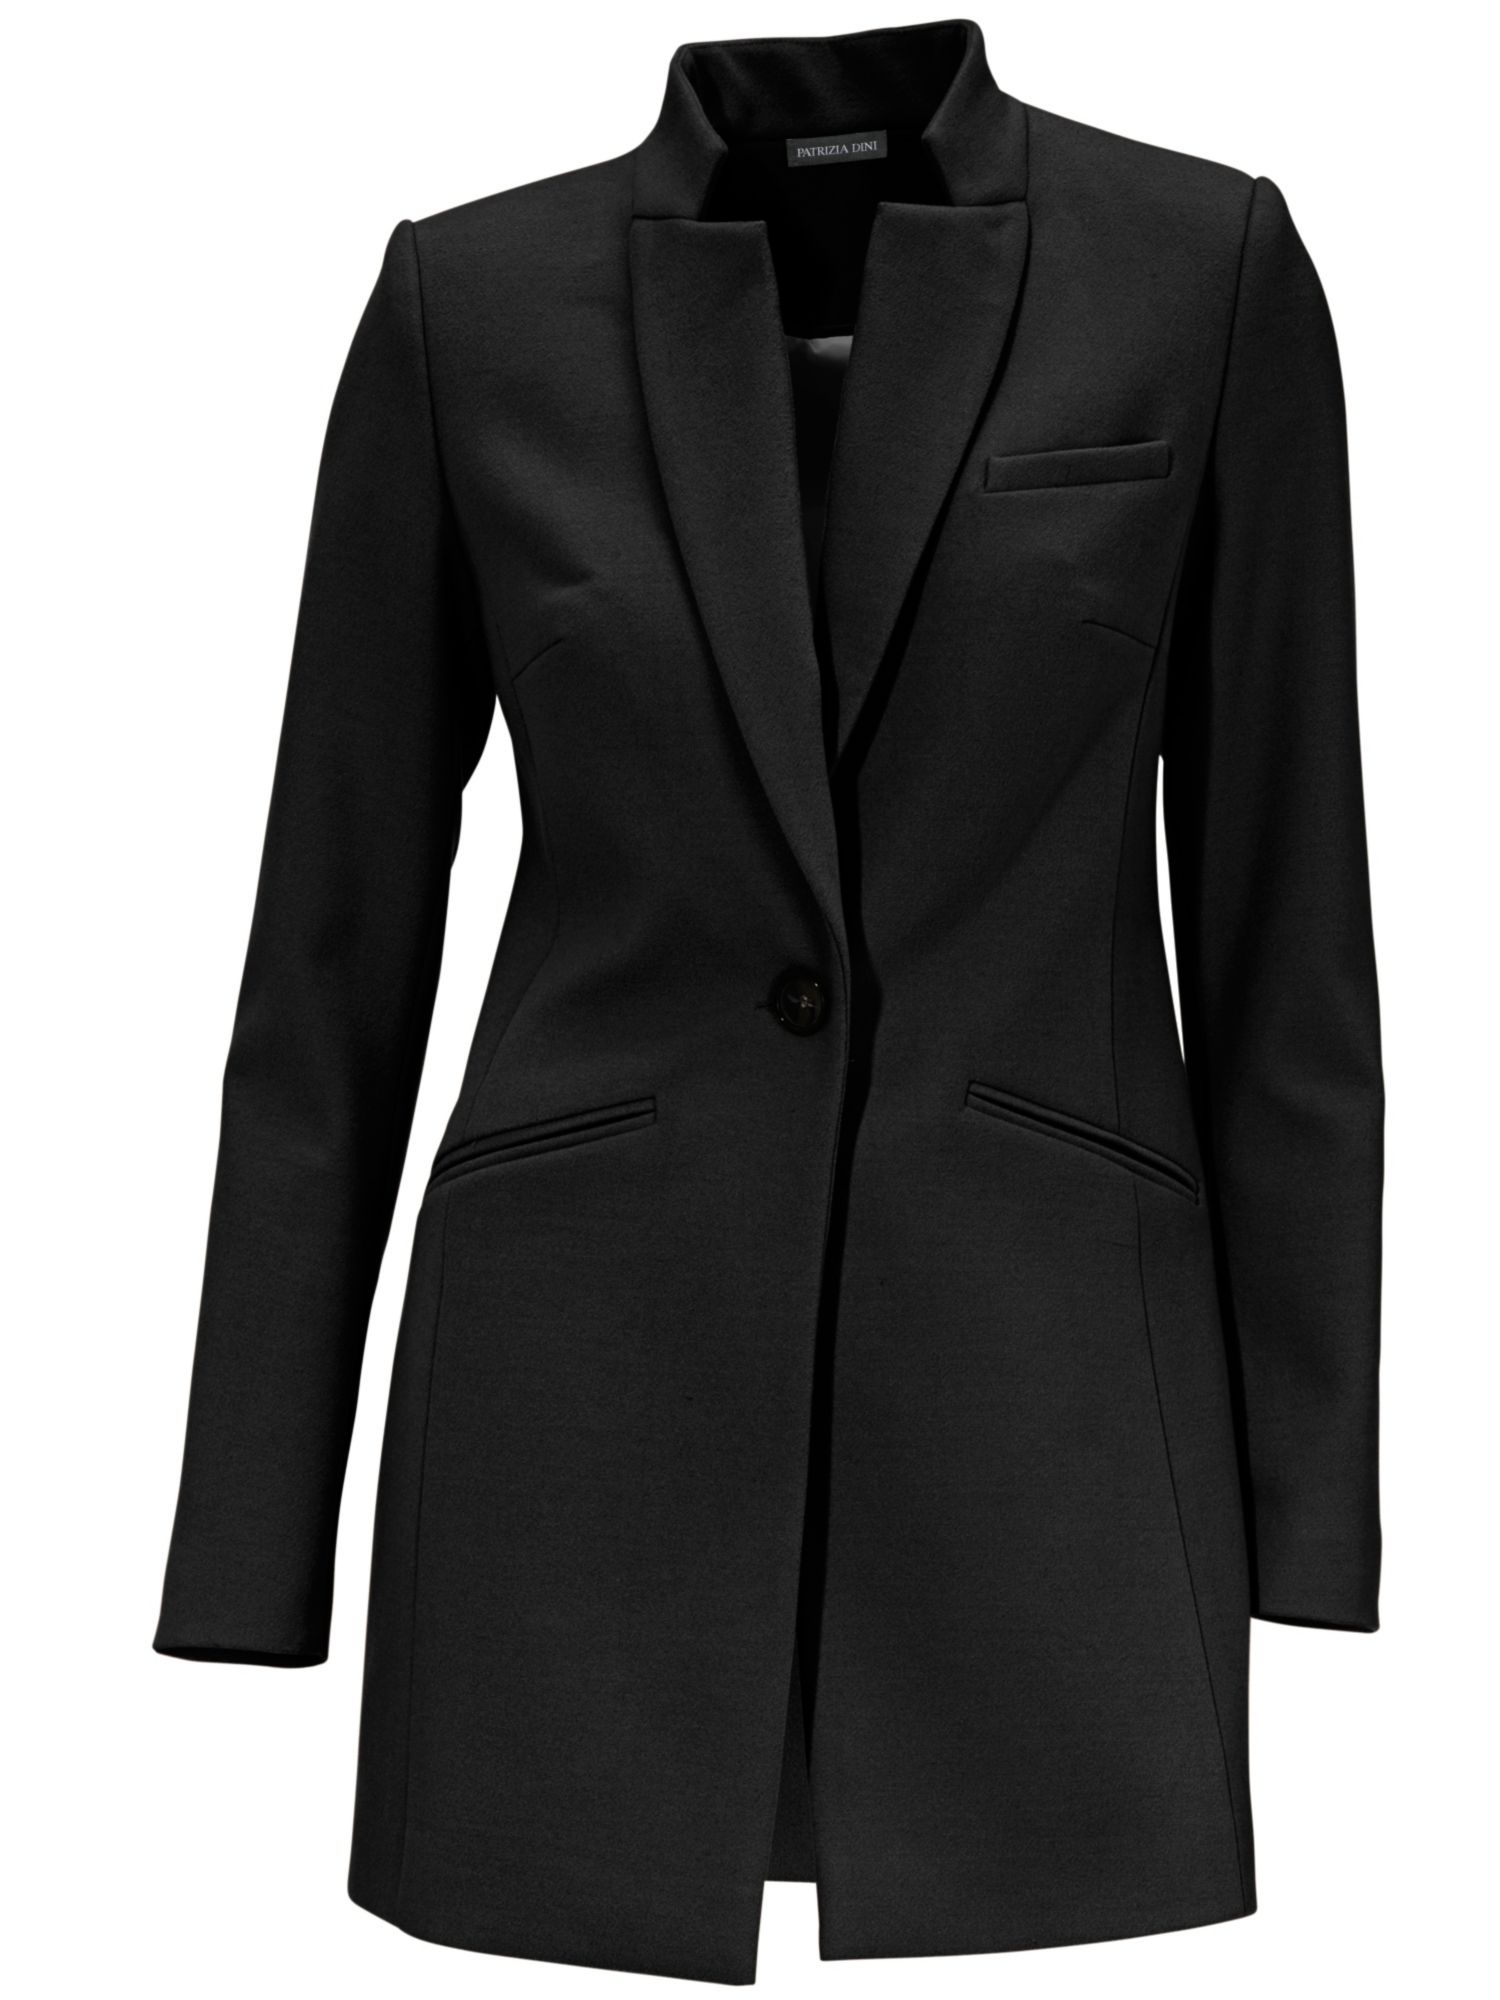 longblazer im schwab online shop damen blazer. Black Bedroom Furniture Sets. Home Design Ideas